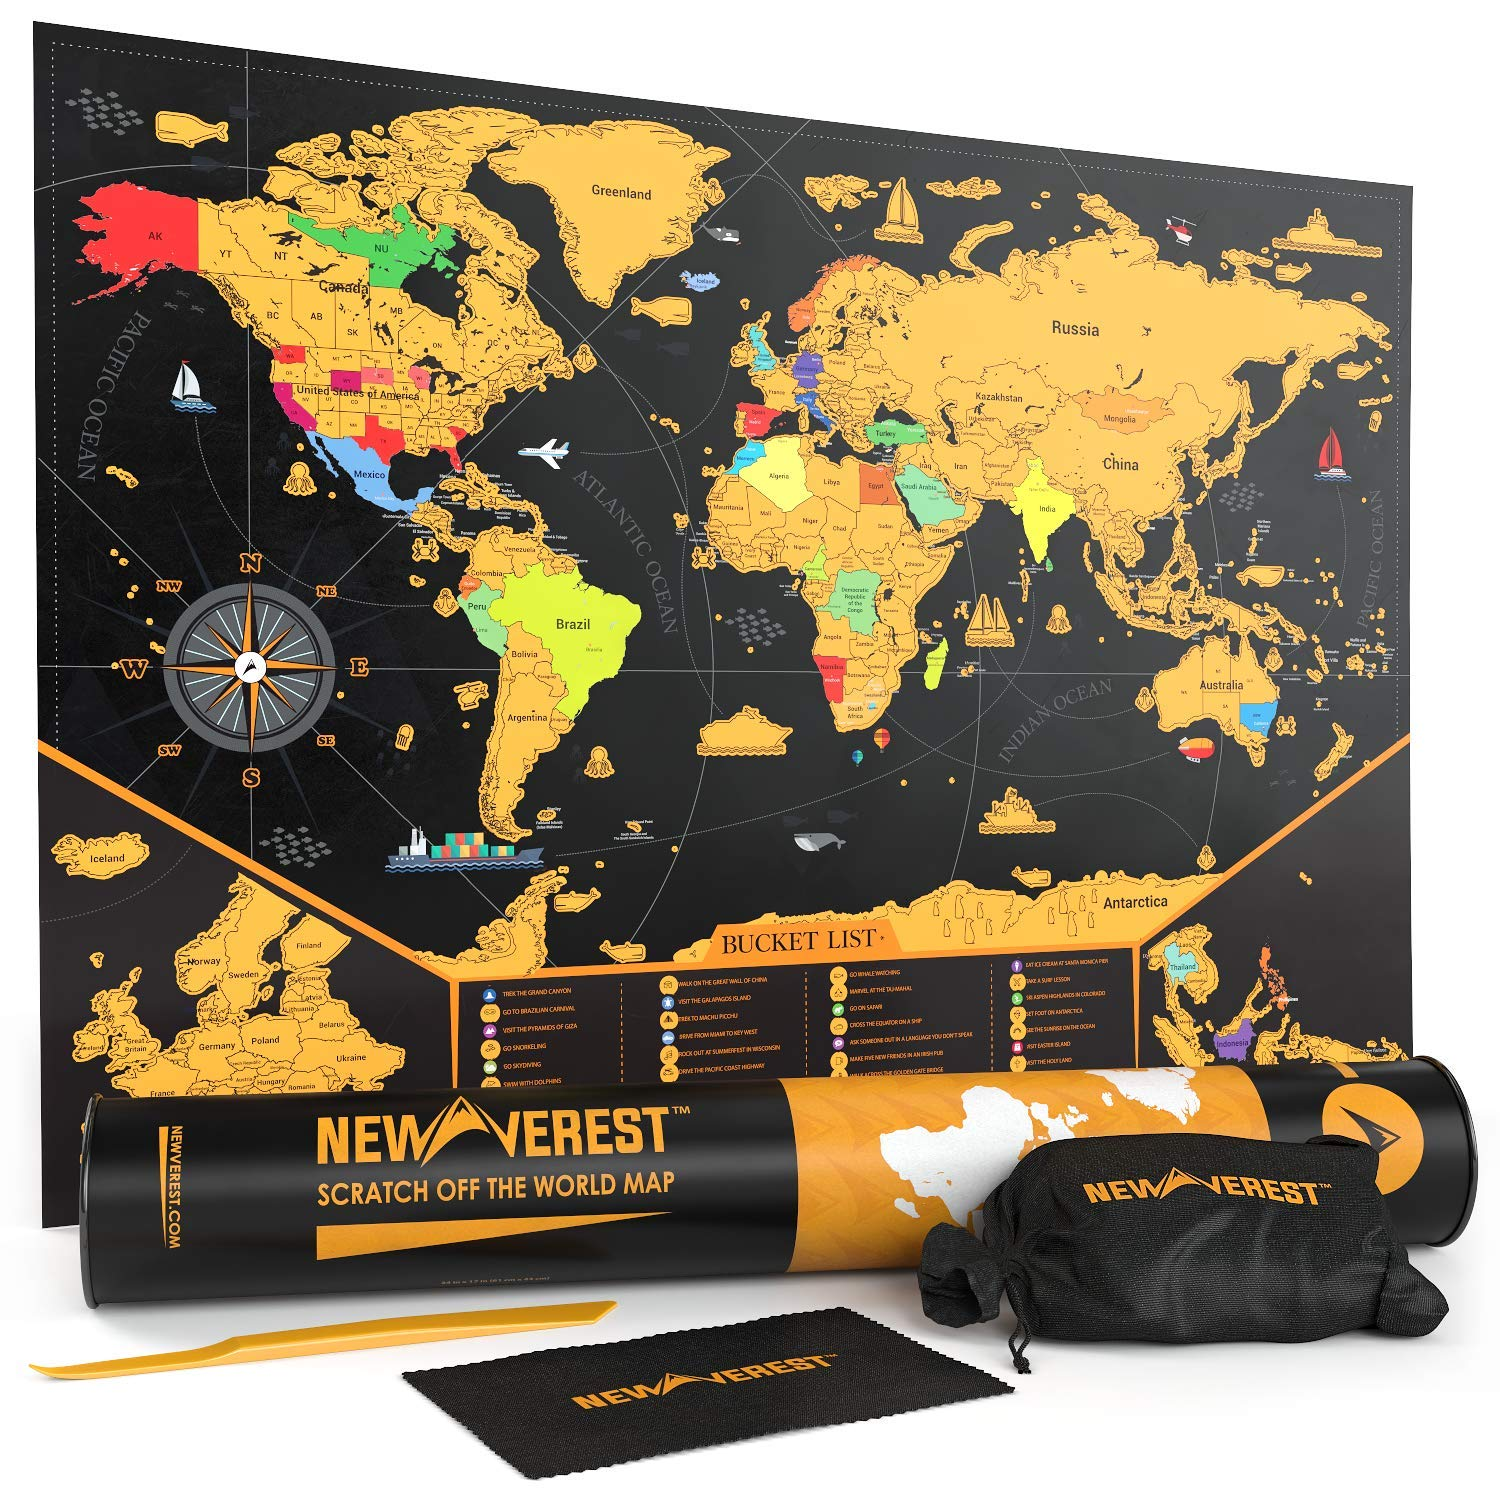 Scratch Off Map of The World, Detailed Travel Art Poster, Fits 17 x 24 Frame, Comes with Scratch Tool, 20 Push Pins, 4 Stickers, Cleaning Cloth, Carry Bag + Gift Tube by Newverest